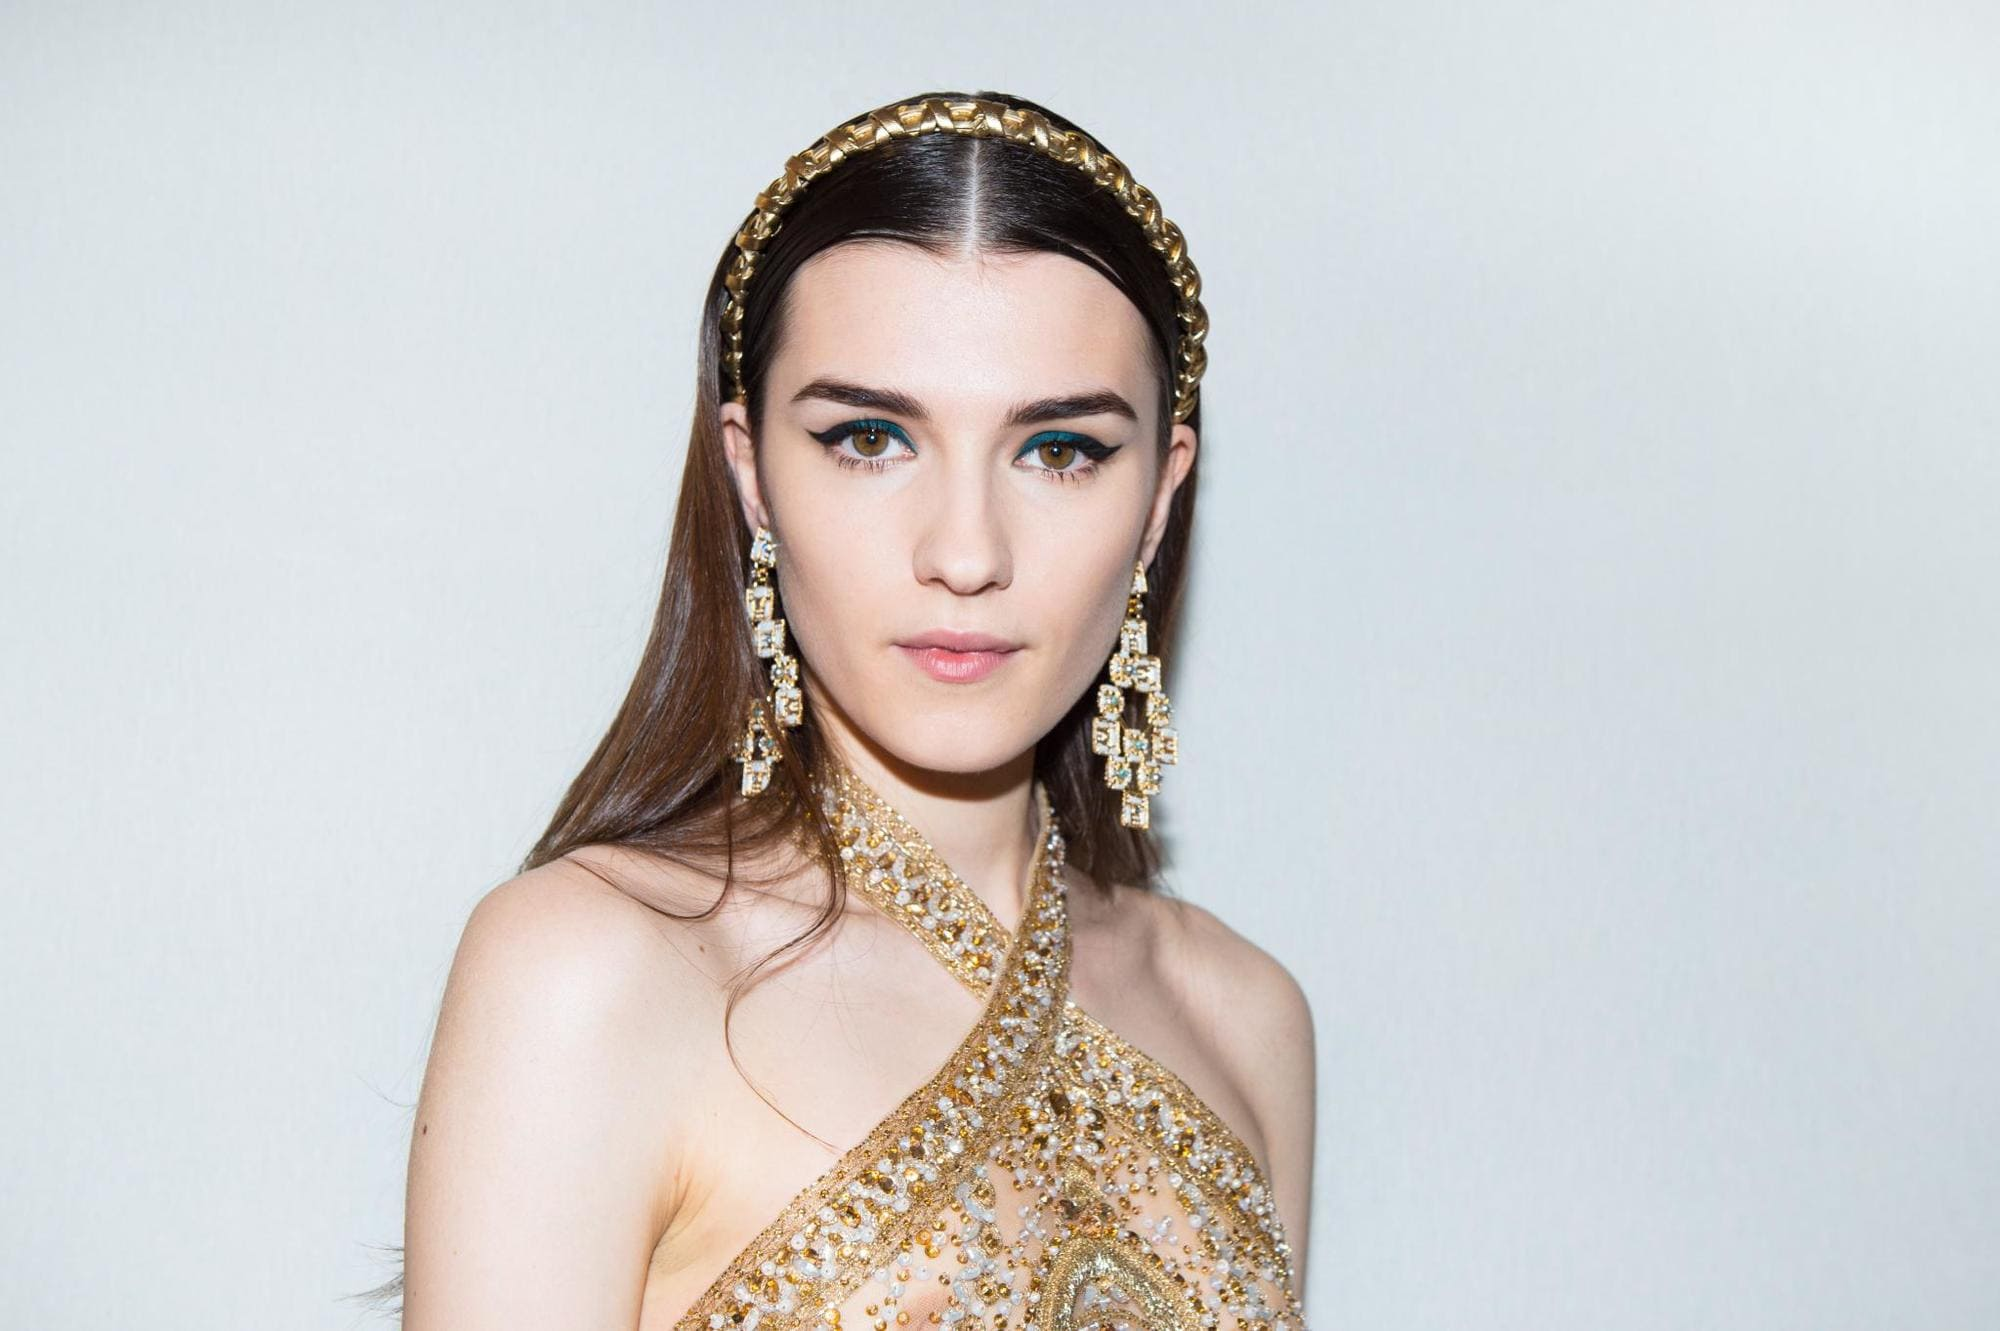 young model wearing headband hairstyle